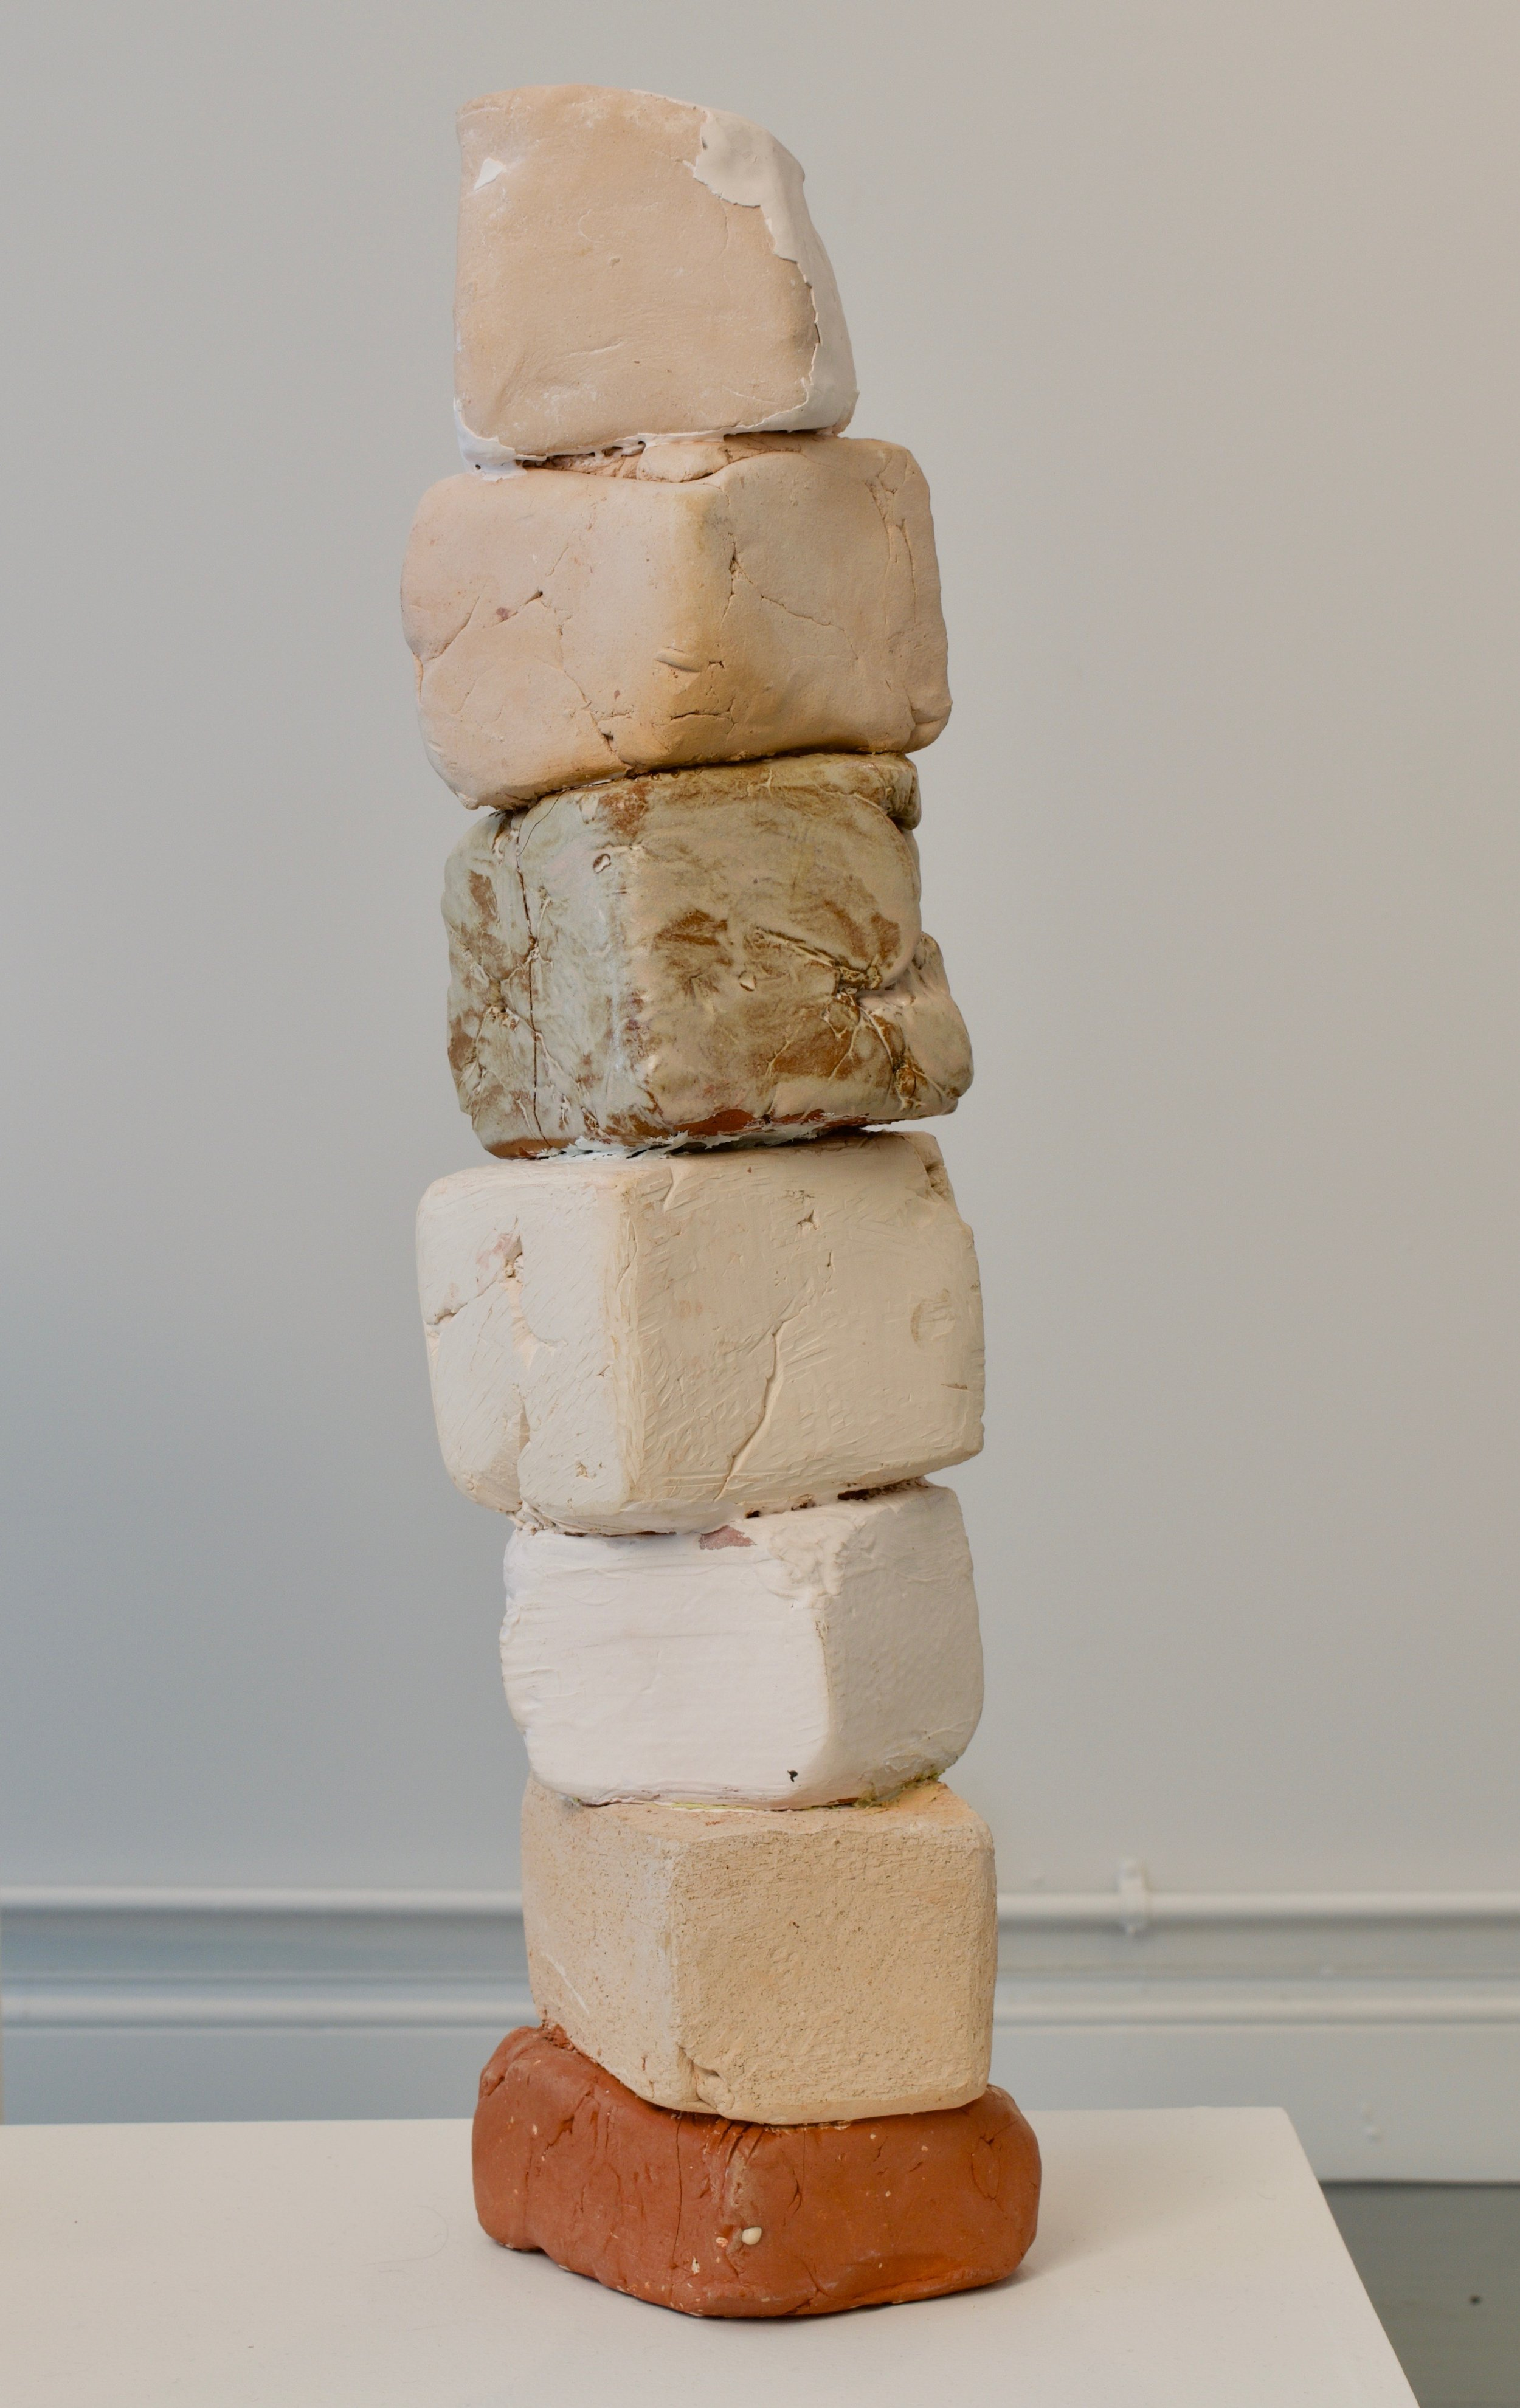 Katia Ramsey-Read, Shelter, 2019. Bisqued and fired clays,  22 ½ x 5 ½ x 6 ½ inches